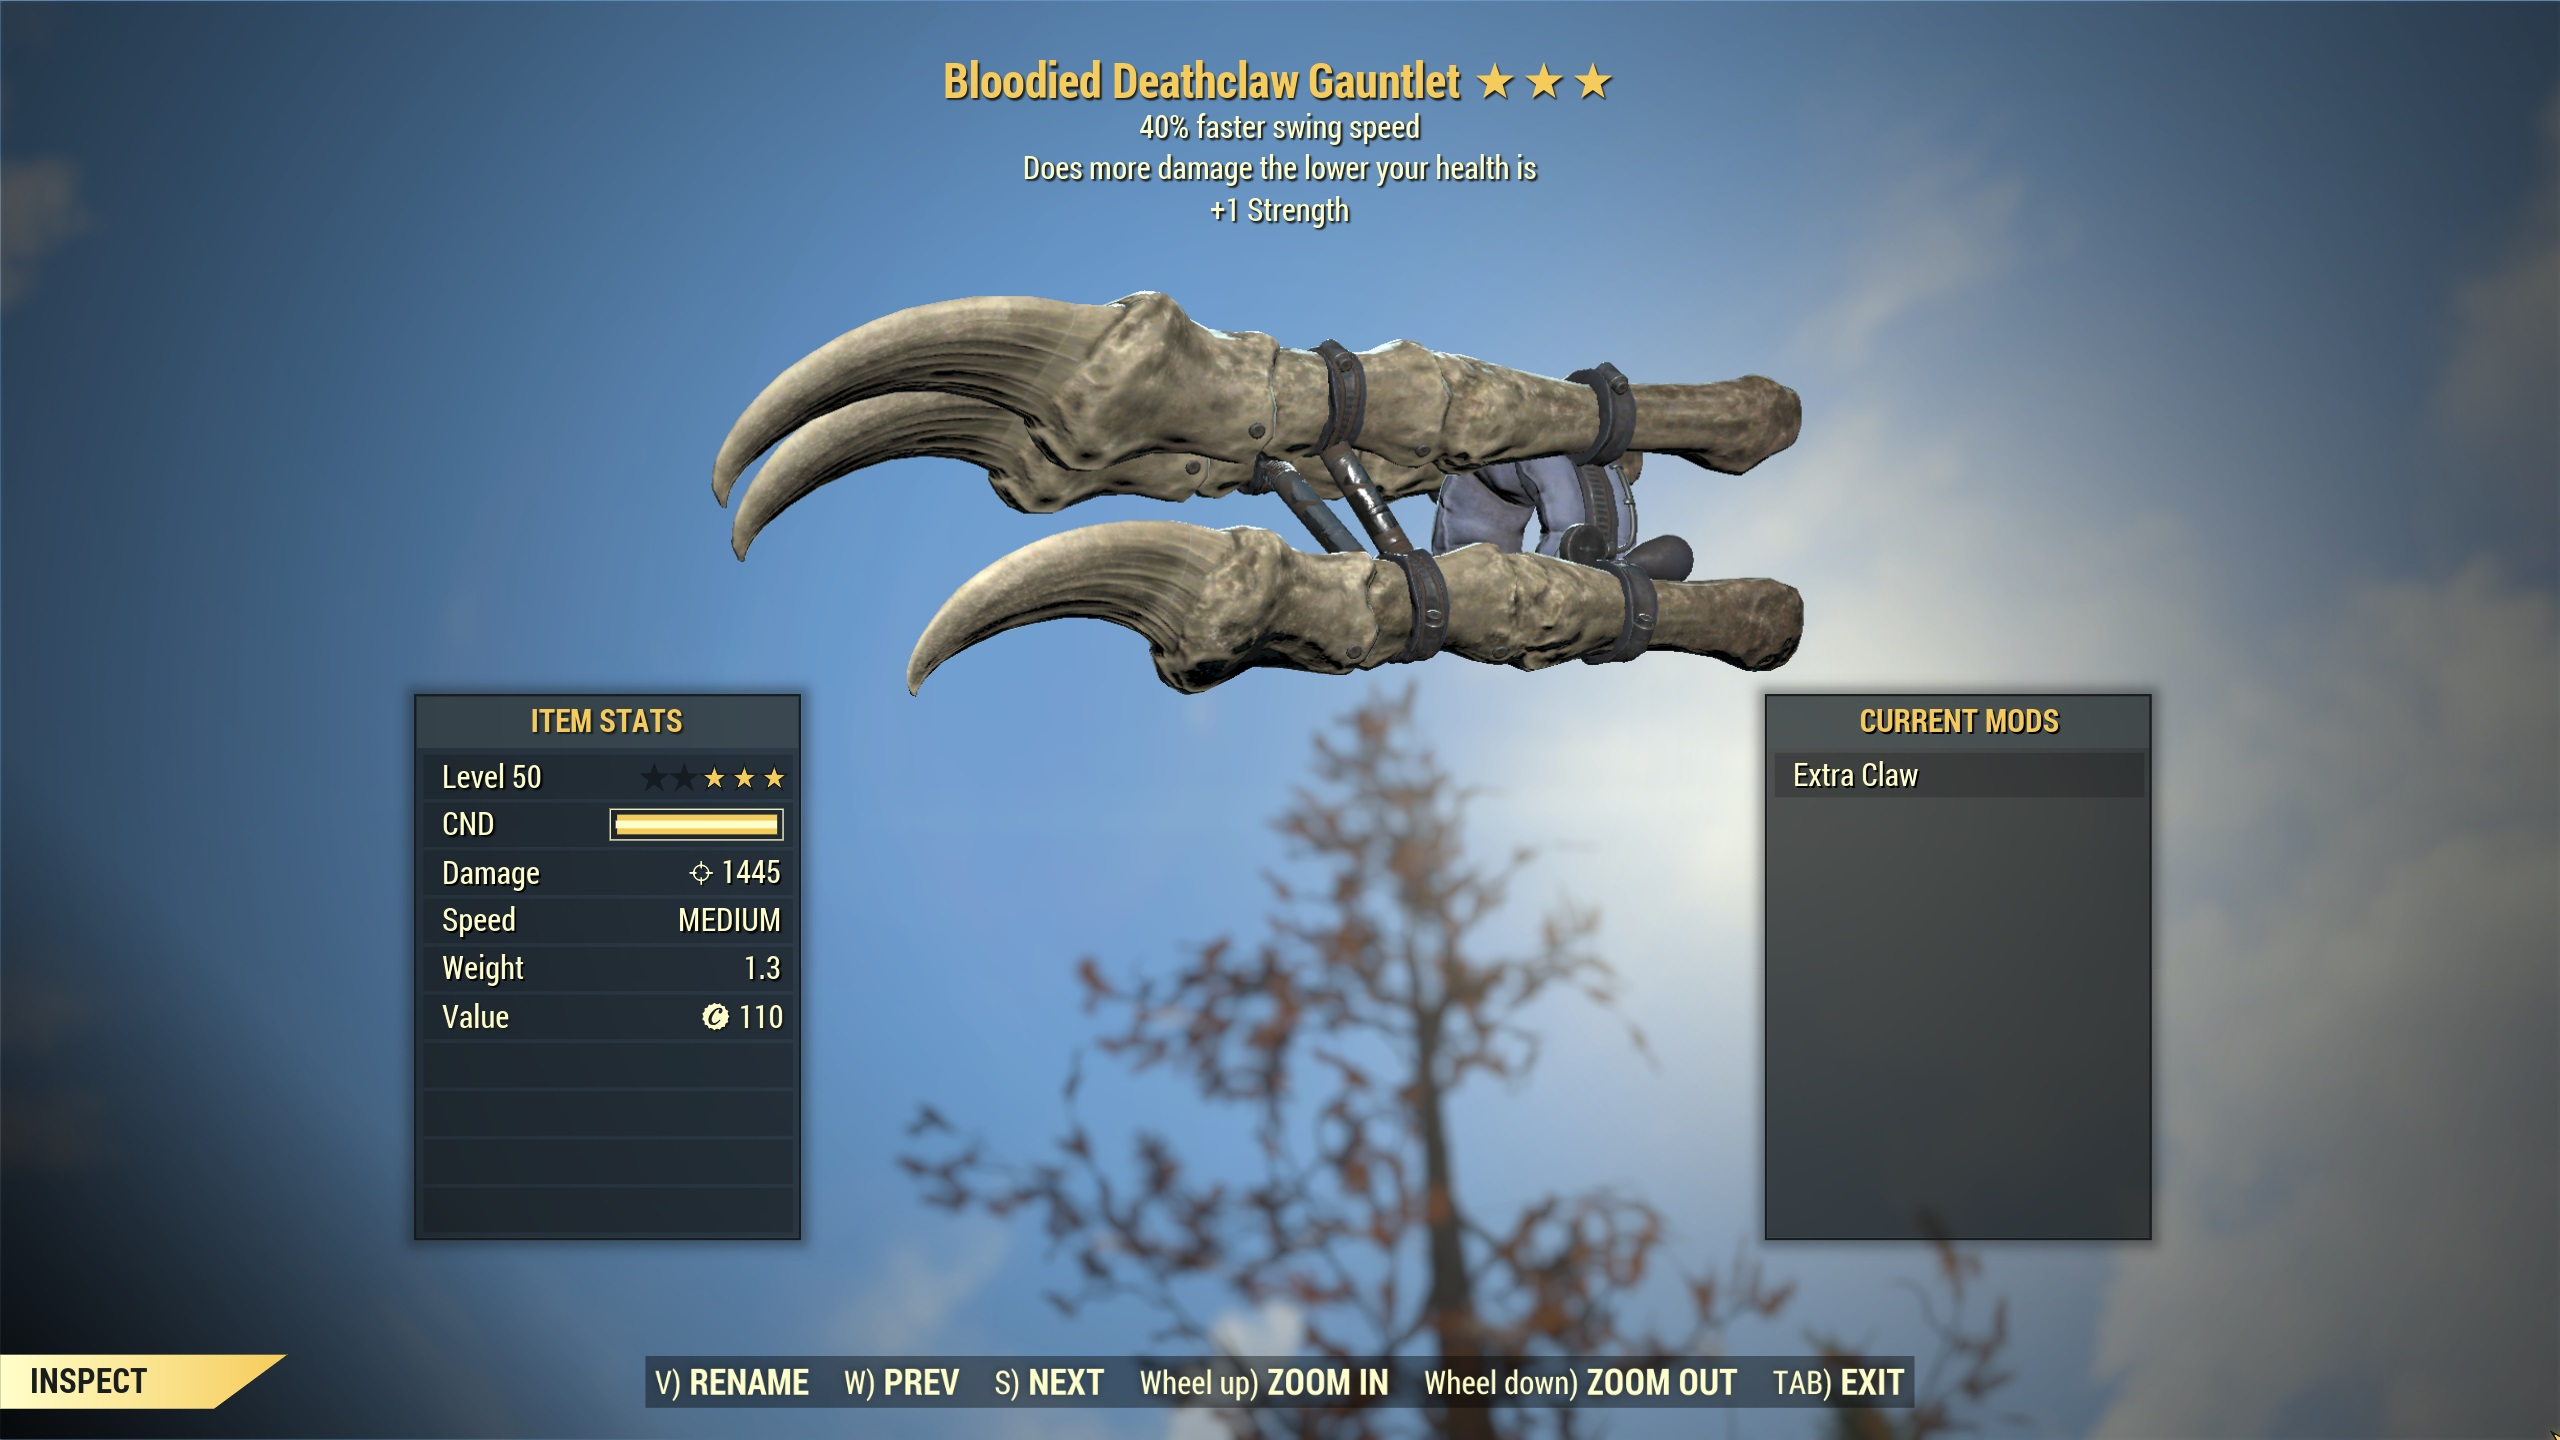 ★★★ Bloodied Deathclaw Gauntlet[40% Faster Swing][+1 STR] | FAST DELIVERY |